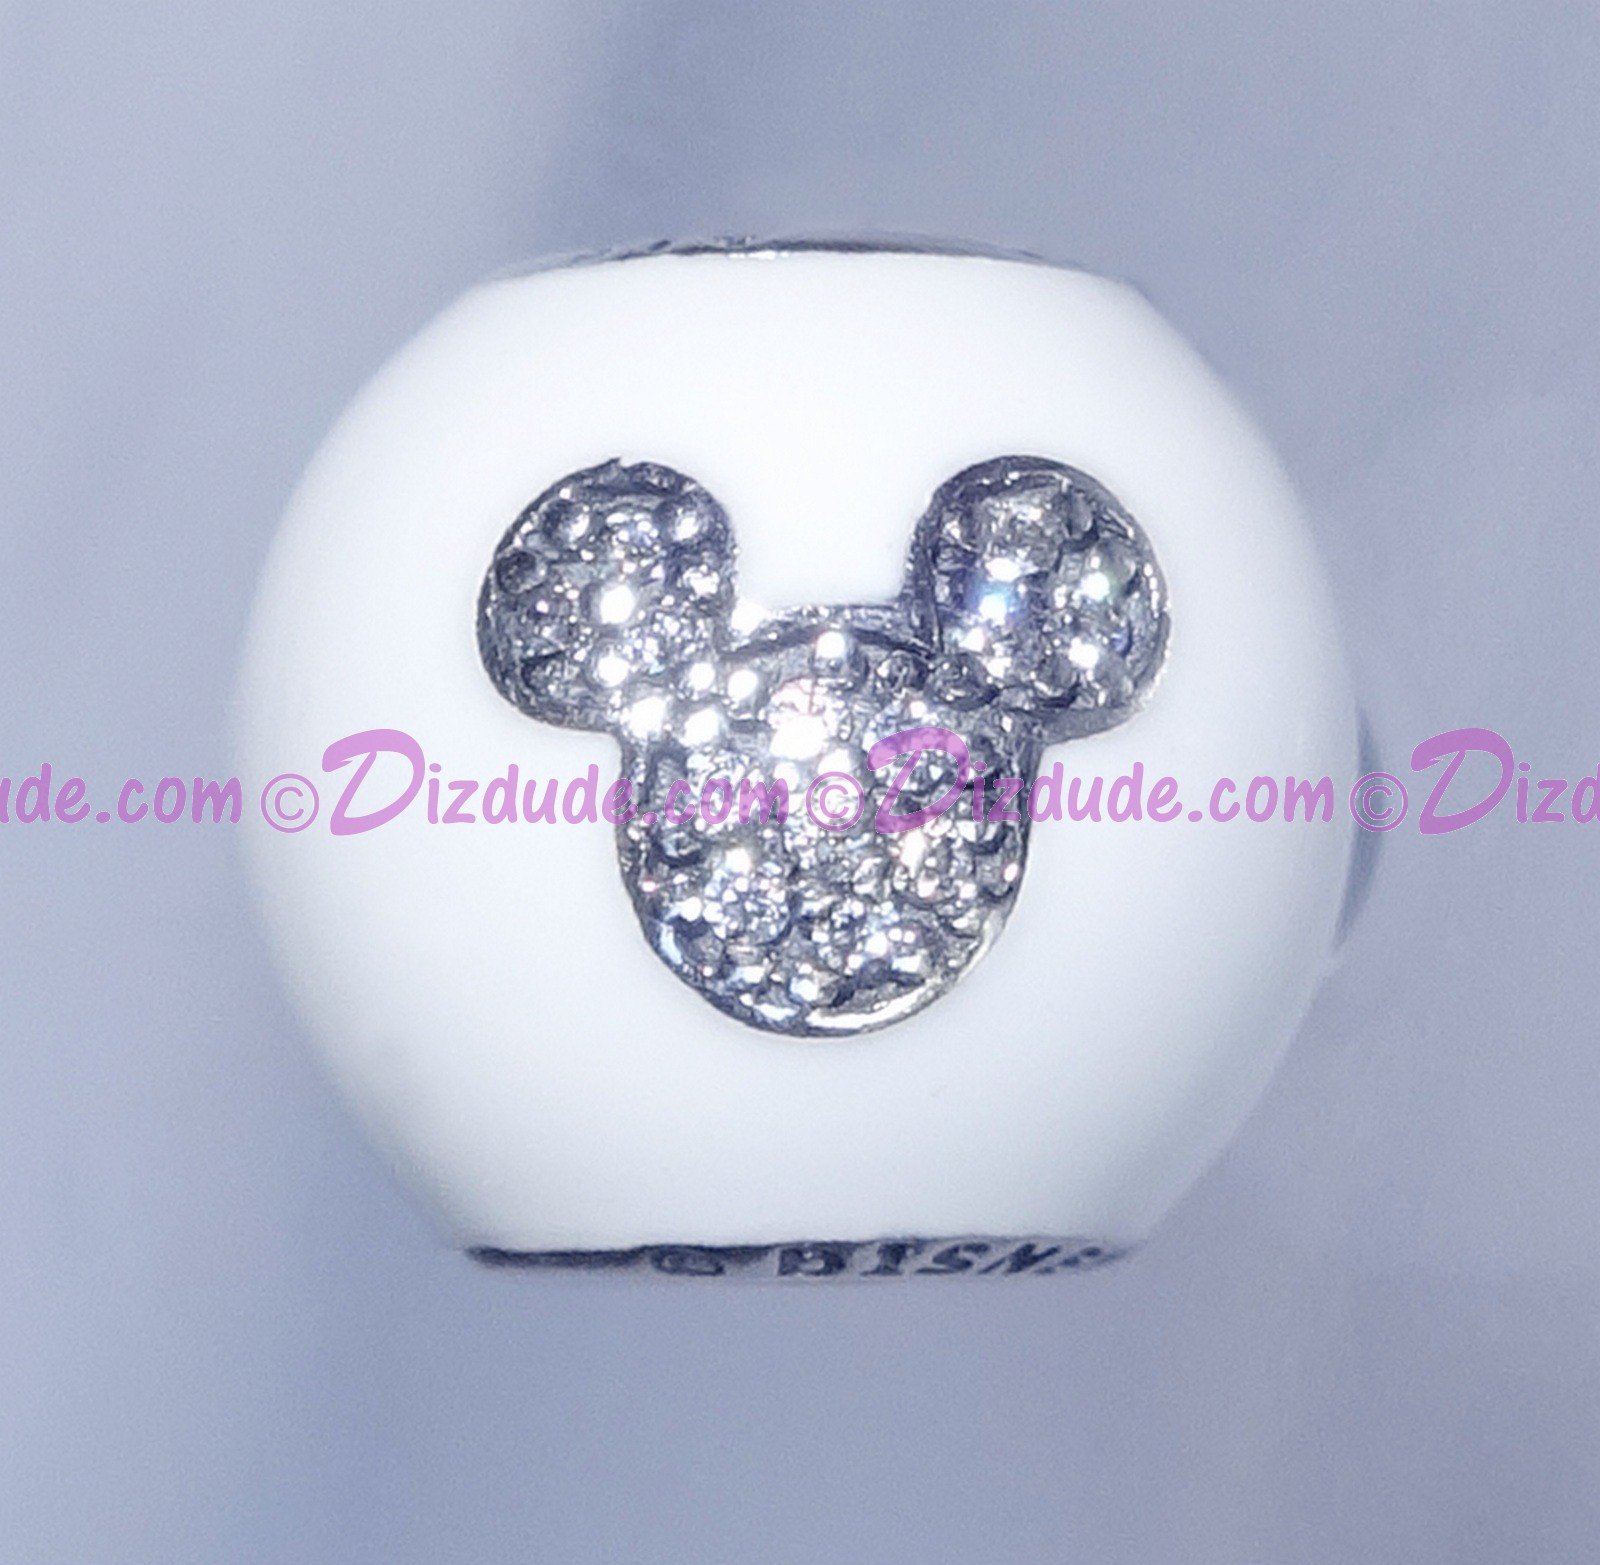 Disney Pandora I Love Mickey Sterling Silver Charm with Cubic Zirconias - Disney World Parks Exclusive